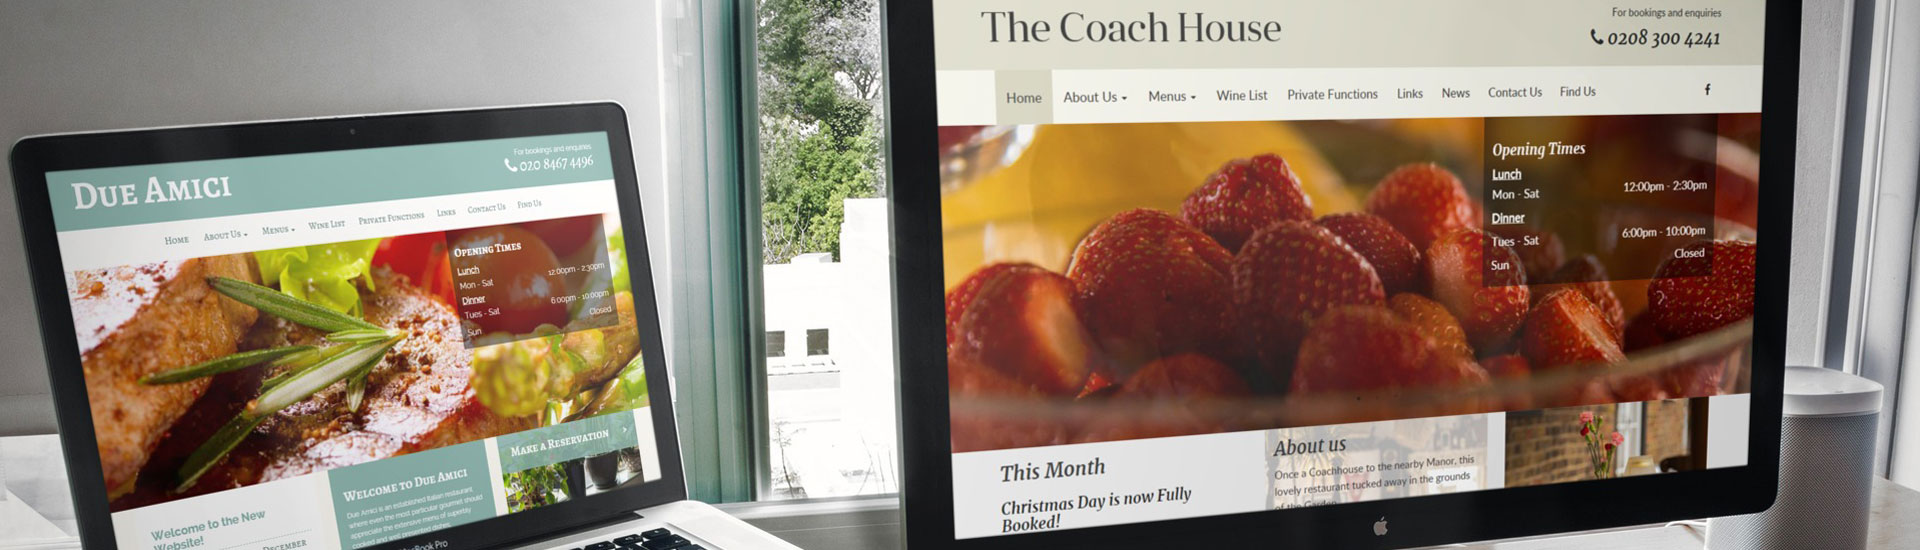 Due Amici and The Coach House websites